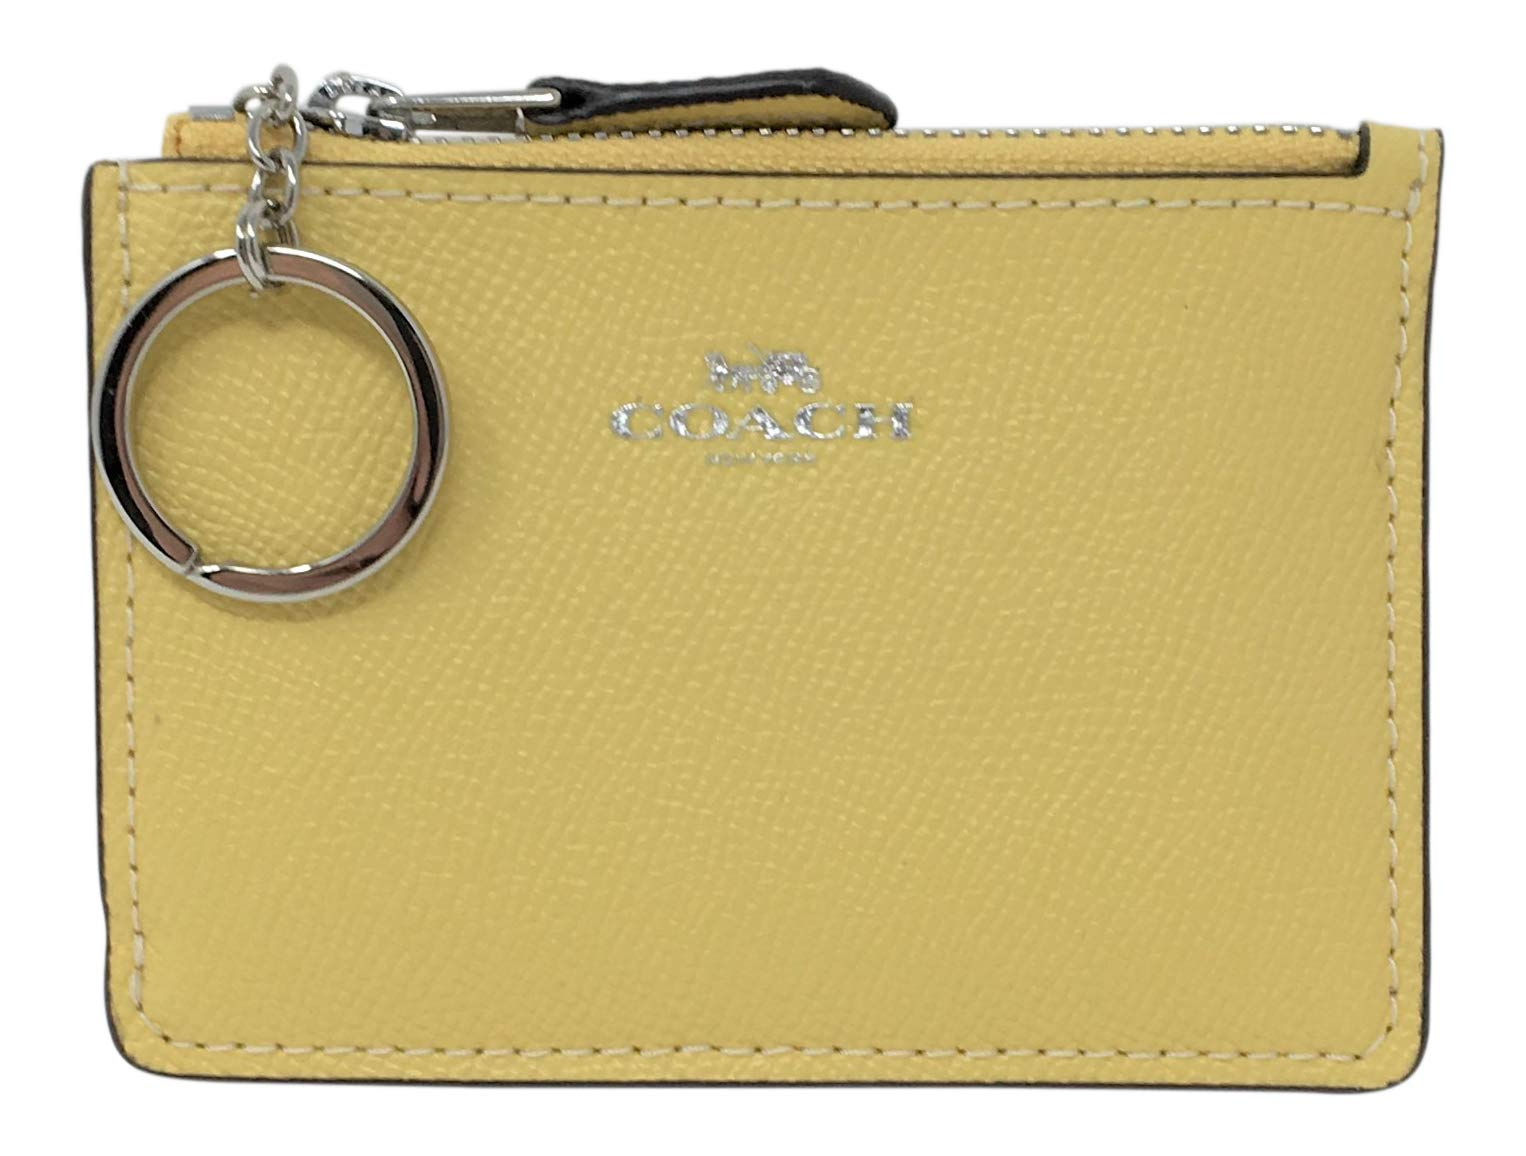 Coach F12186 Mini Skinny ID Case In Crossgrain Leather Light Yellow by Coach